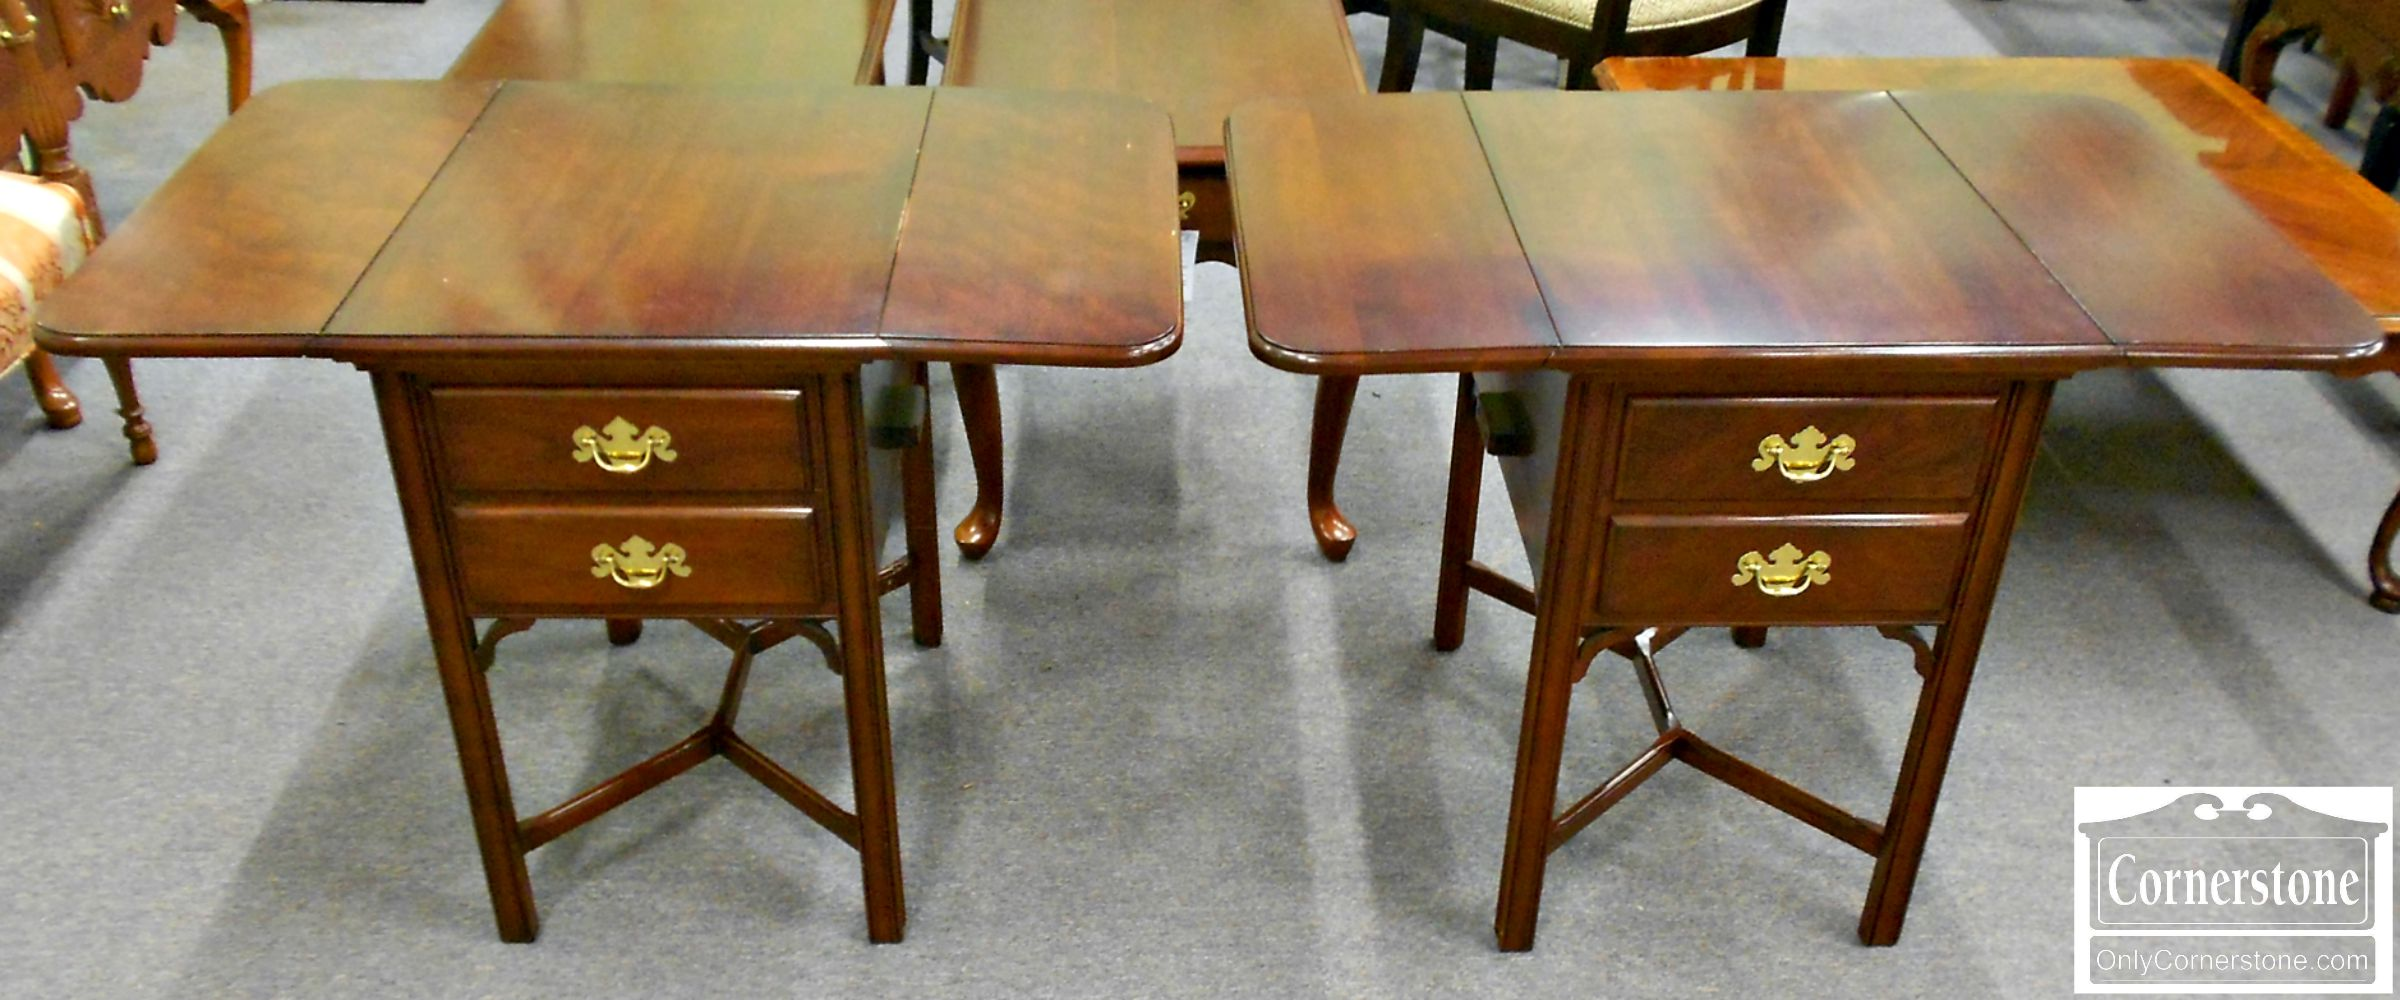 5670-546 Z Pair of Solid Cherry Drop Leaf Tables